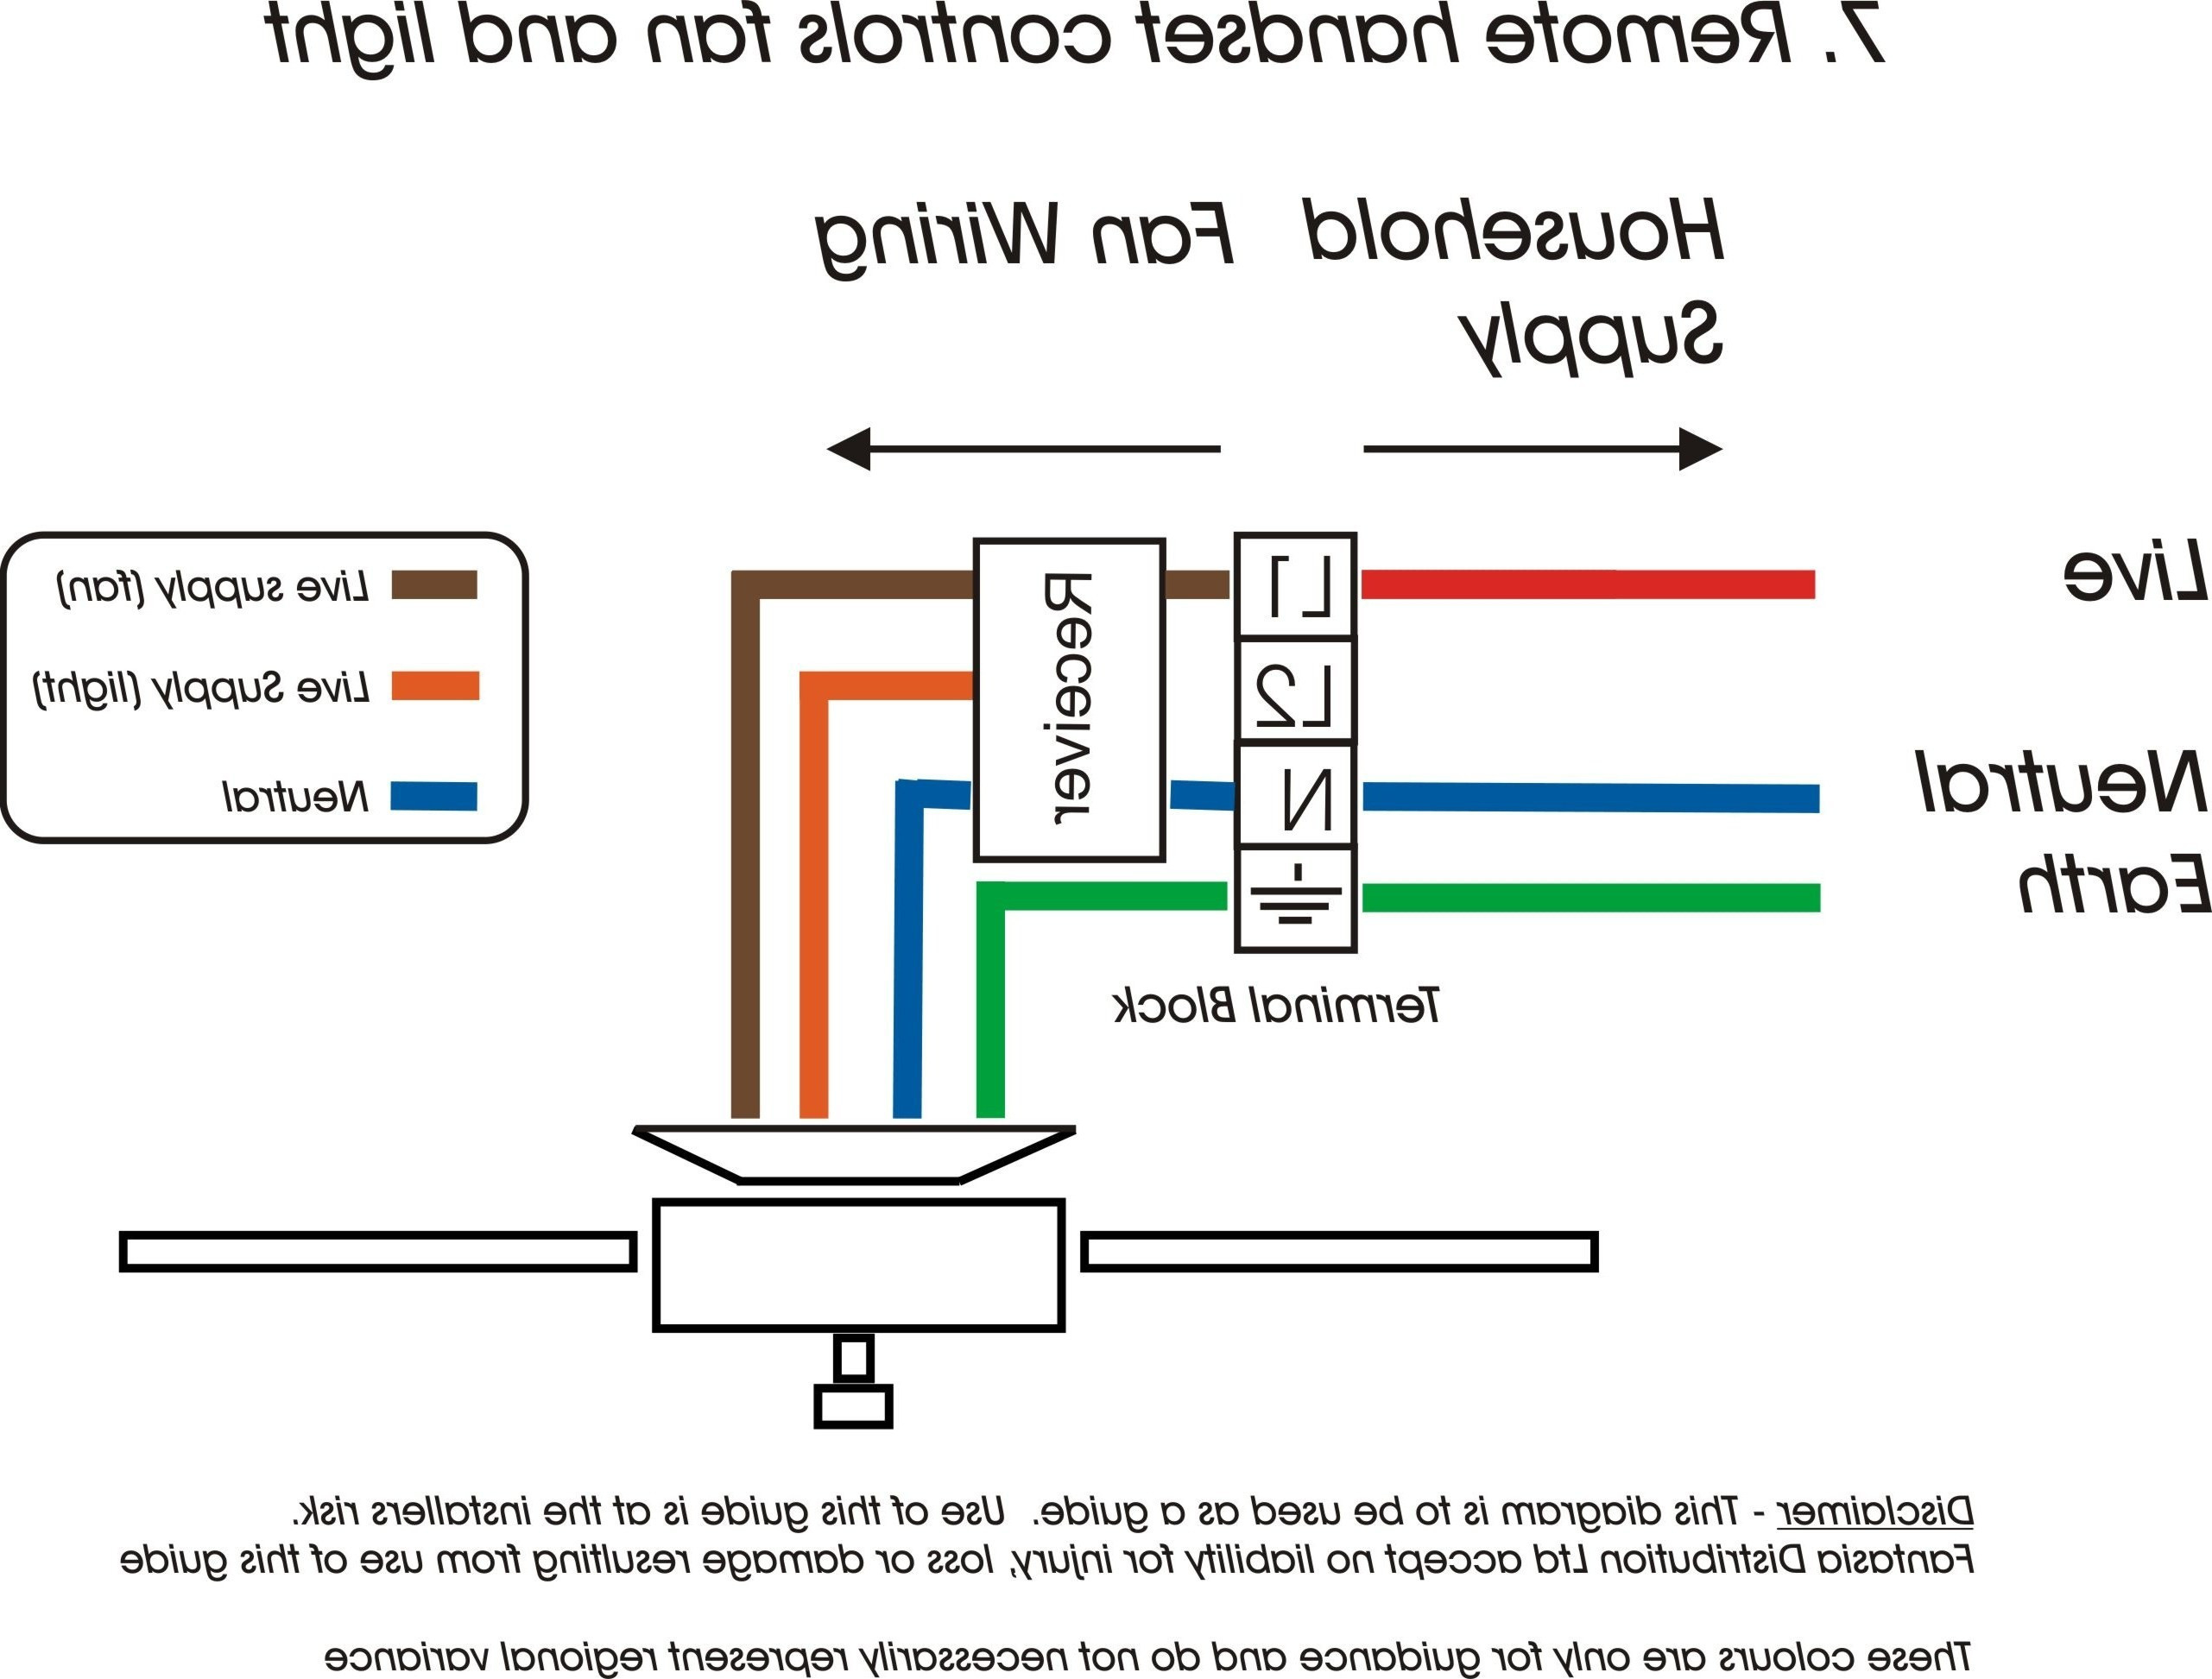 3 way switch wiring diagram Collection-3 Way Switch Wiring Diagram Australia Inspirationa Wiring Diagram For Dimmer Switch Australia Fresh Lighting Wiring 19-h